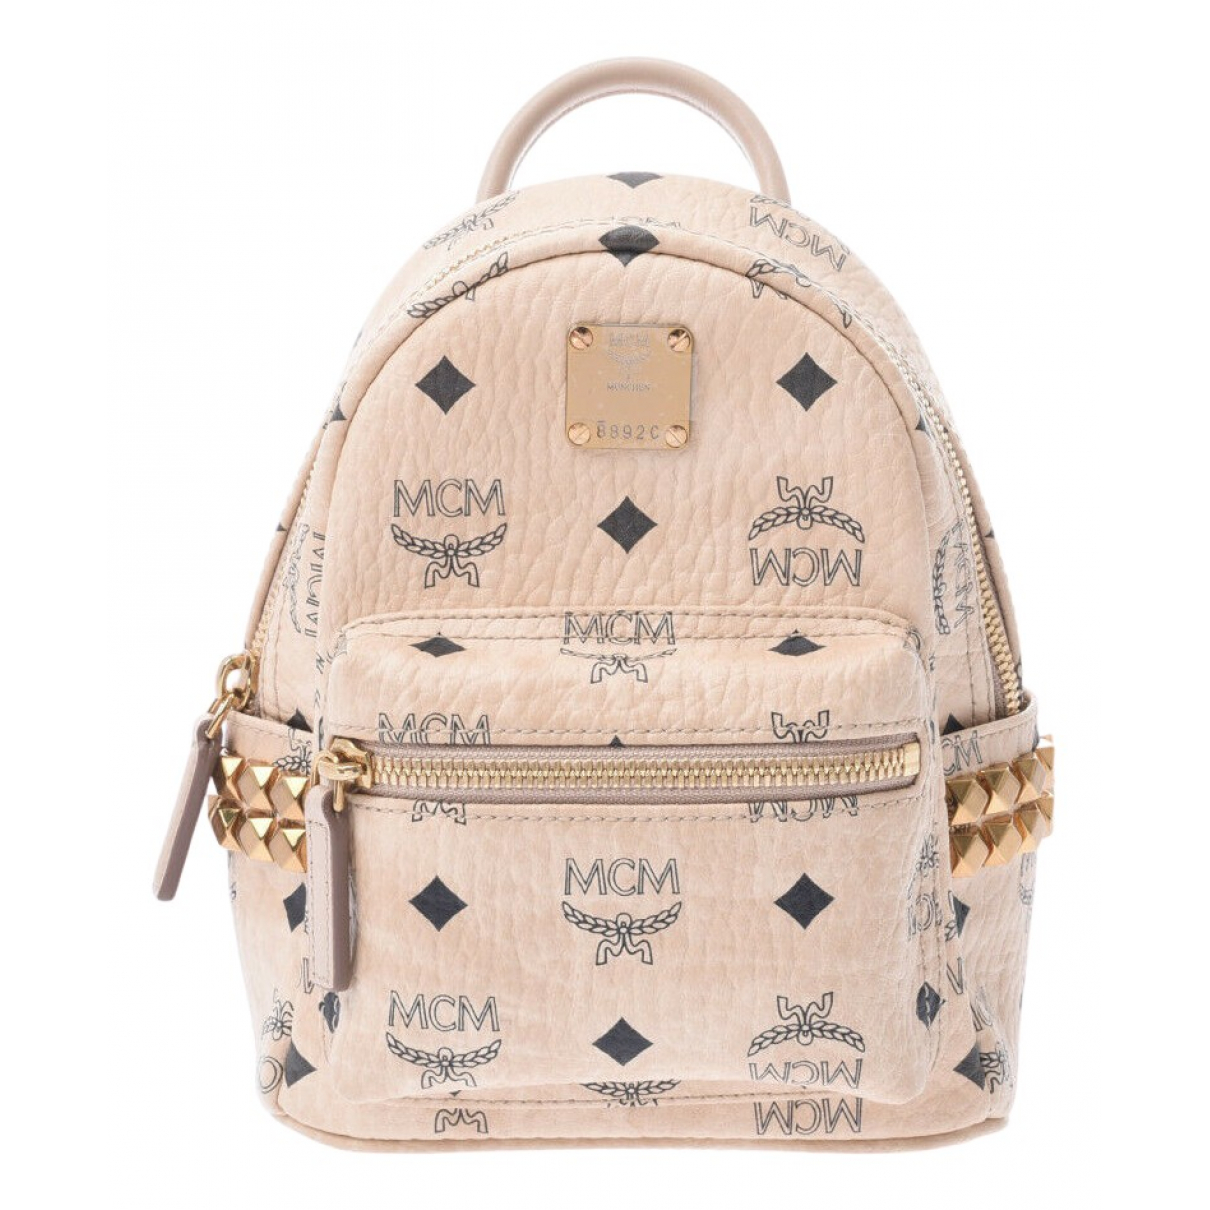 Mcm N Beige Leather backpack for Women N